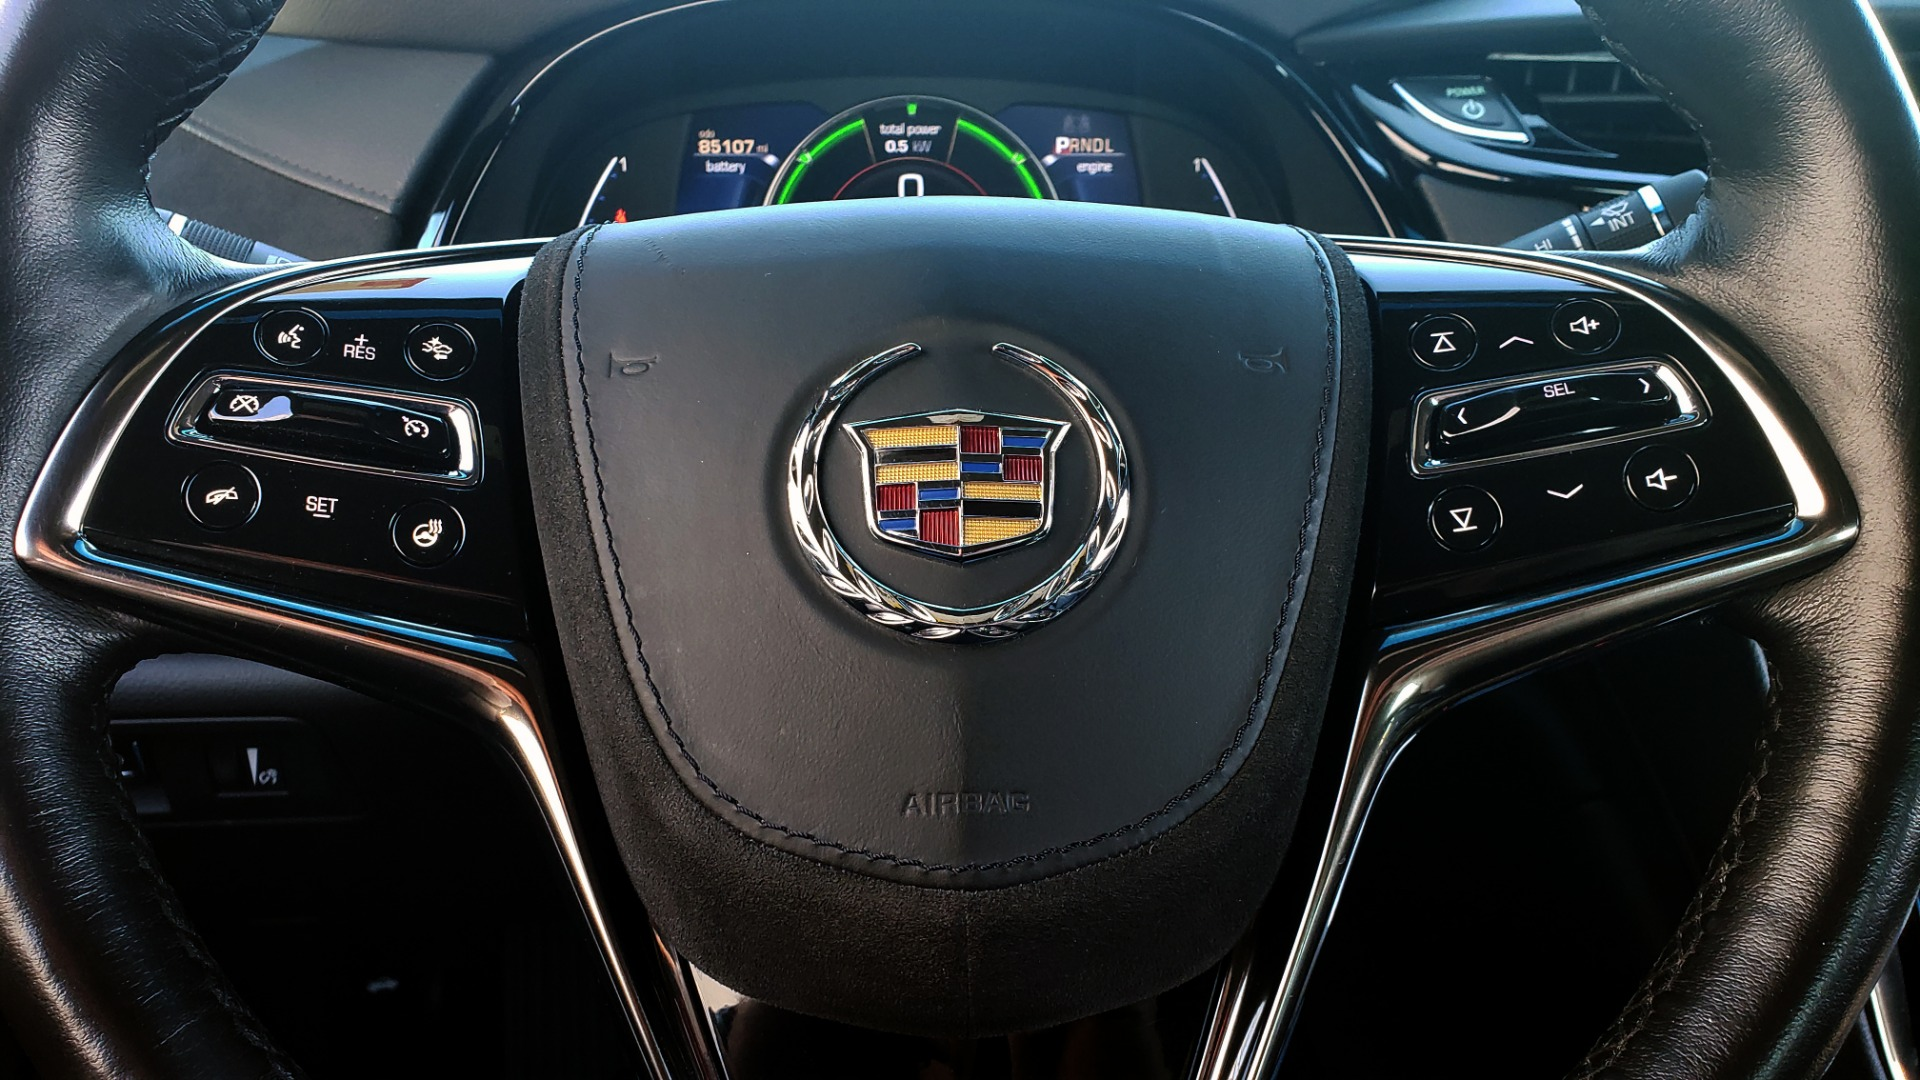 Used 2014 Cadillac ELR 2DR COUPE / HYBRID / NAV / BOSE / HEATED SEATS / REARVIEW for sale $19,995 at Formula Imports in Charlotte NC 28227 38